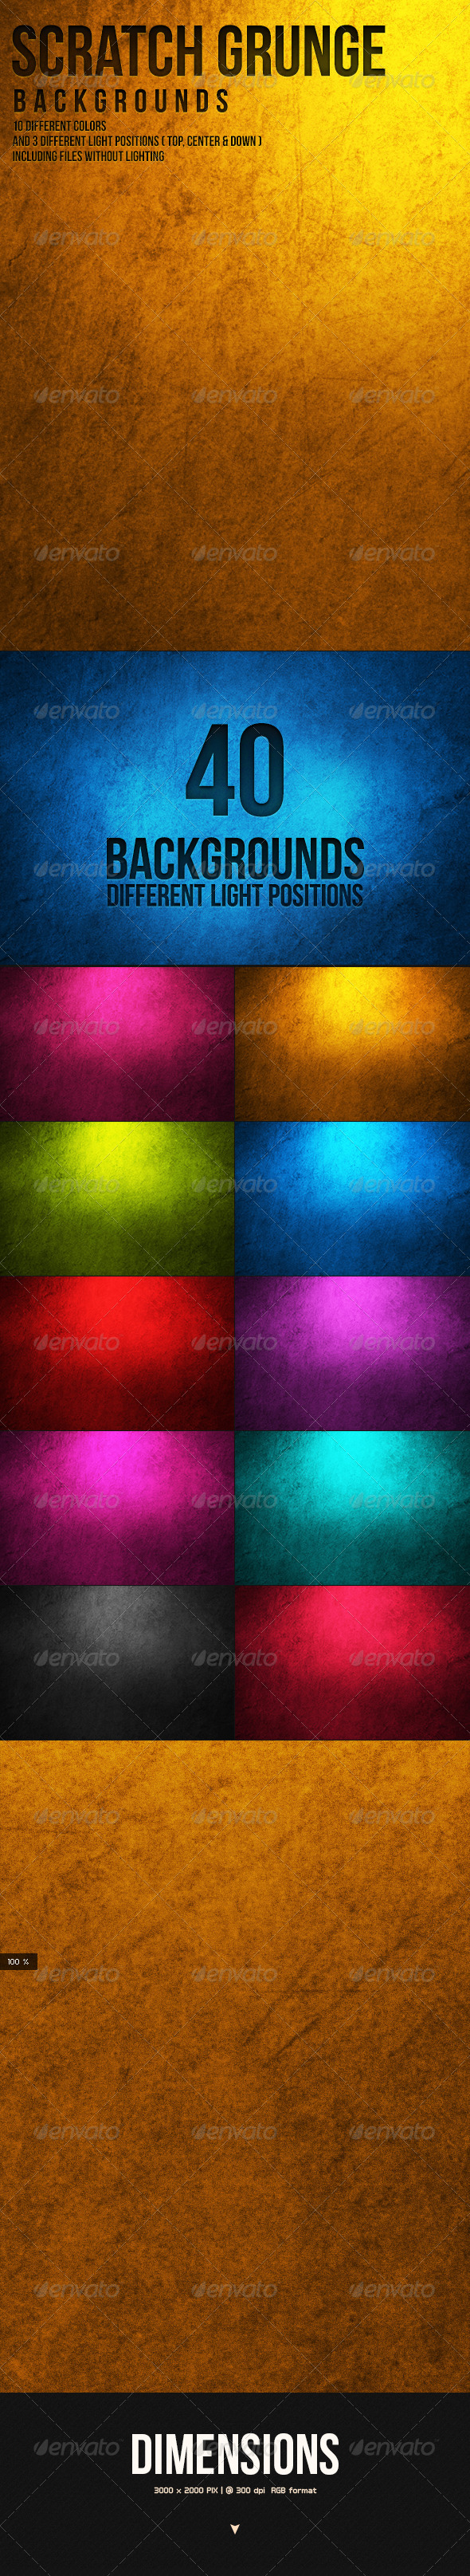 GraphicRiver Scratch Grunge Background 5586084